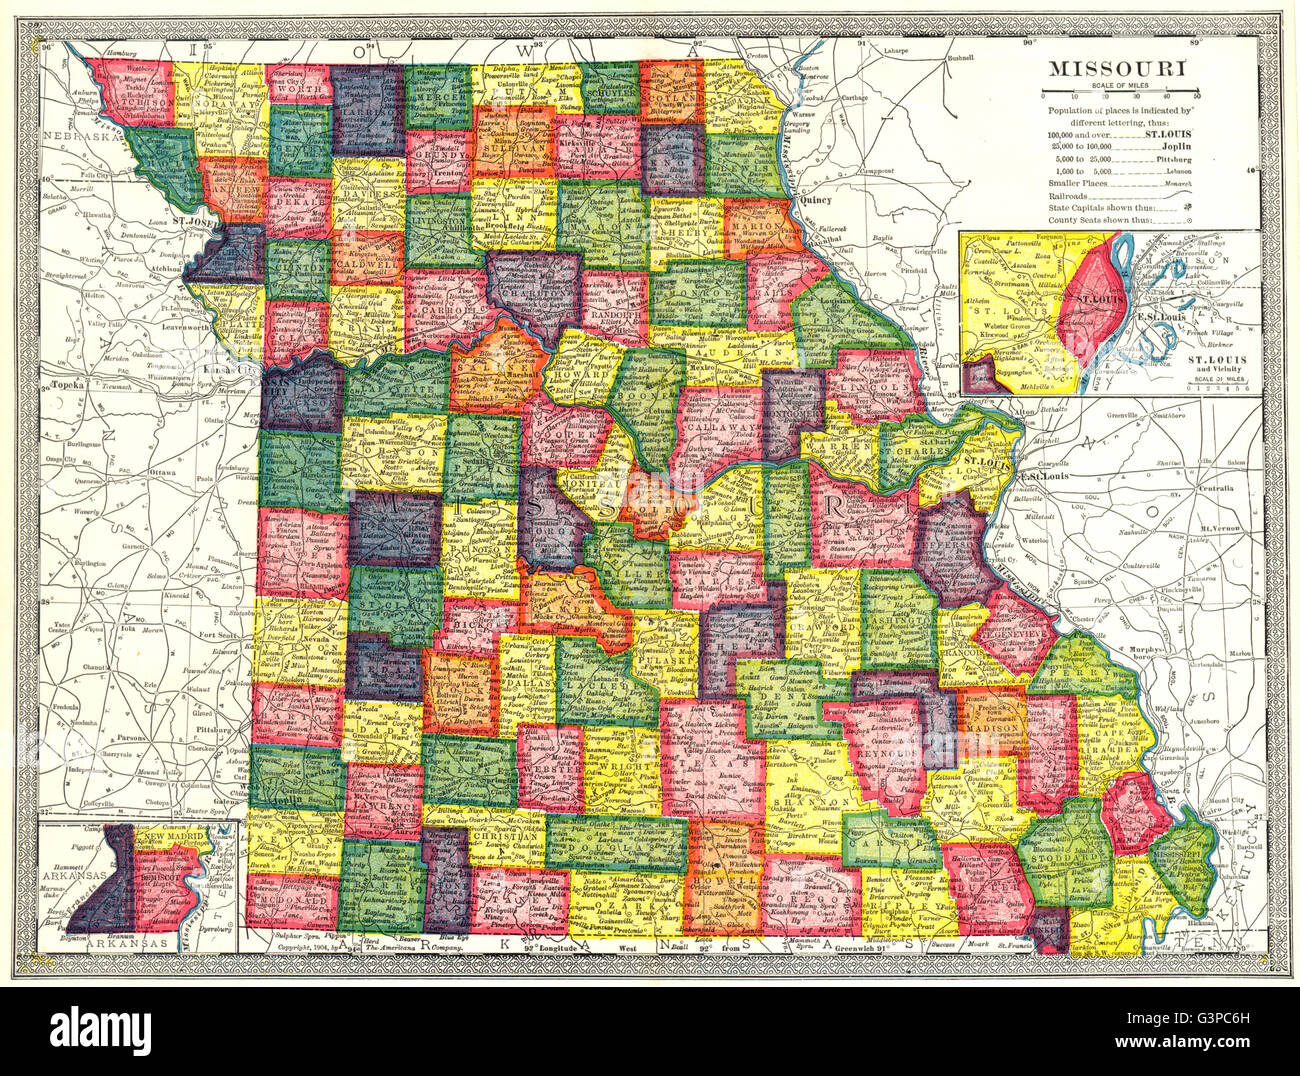 St Louis State Map.Missouri State Map Counties Inset St Louis Environs 1907 Stock